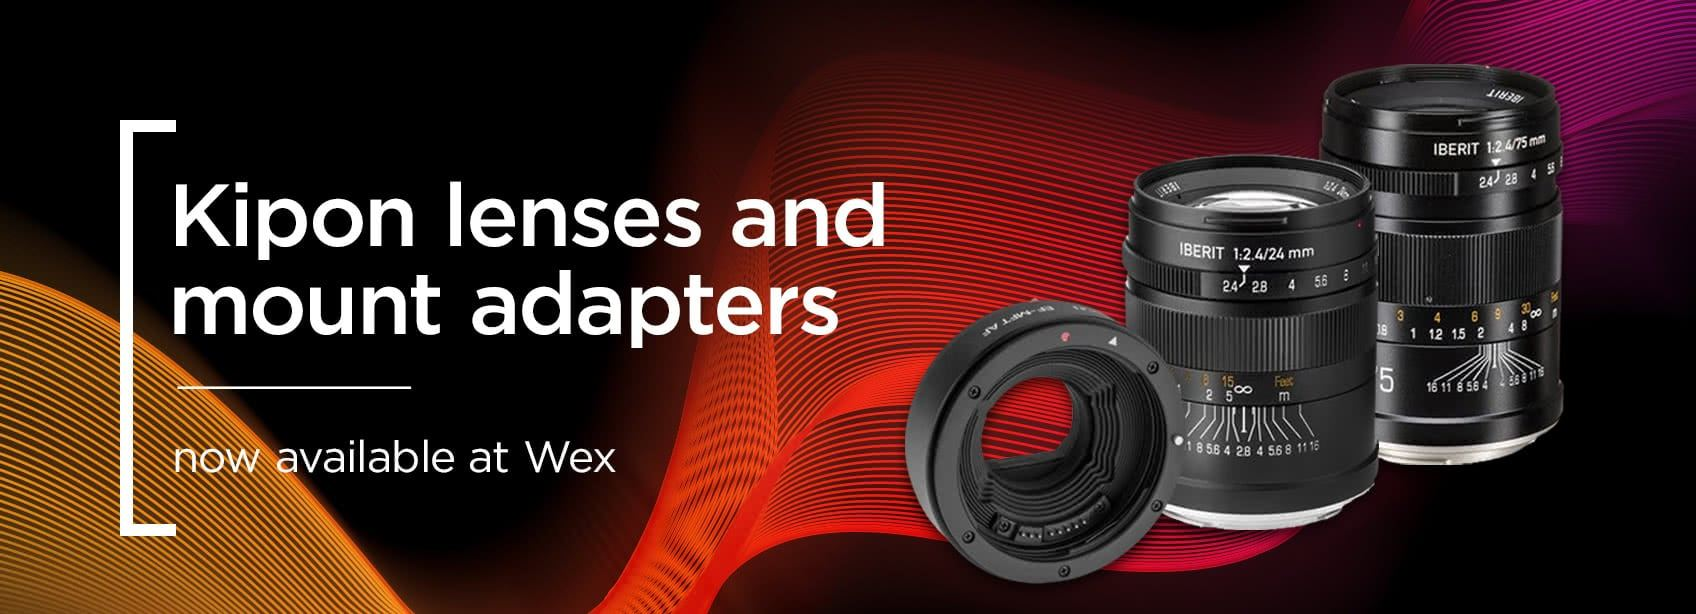 Kipon lenses and mount adapters - now available at Wex